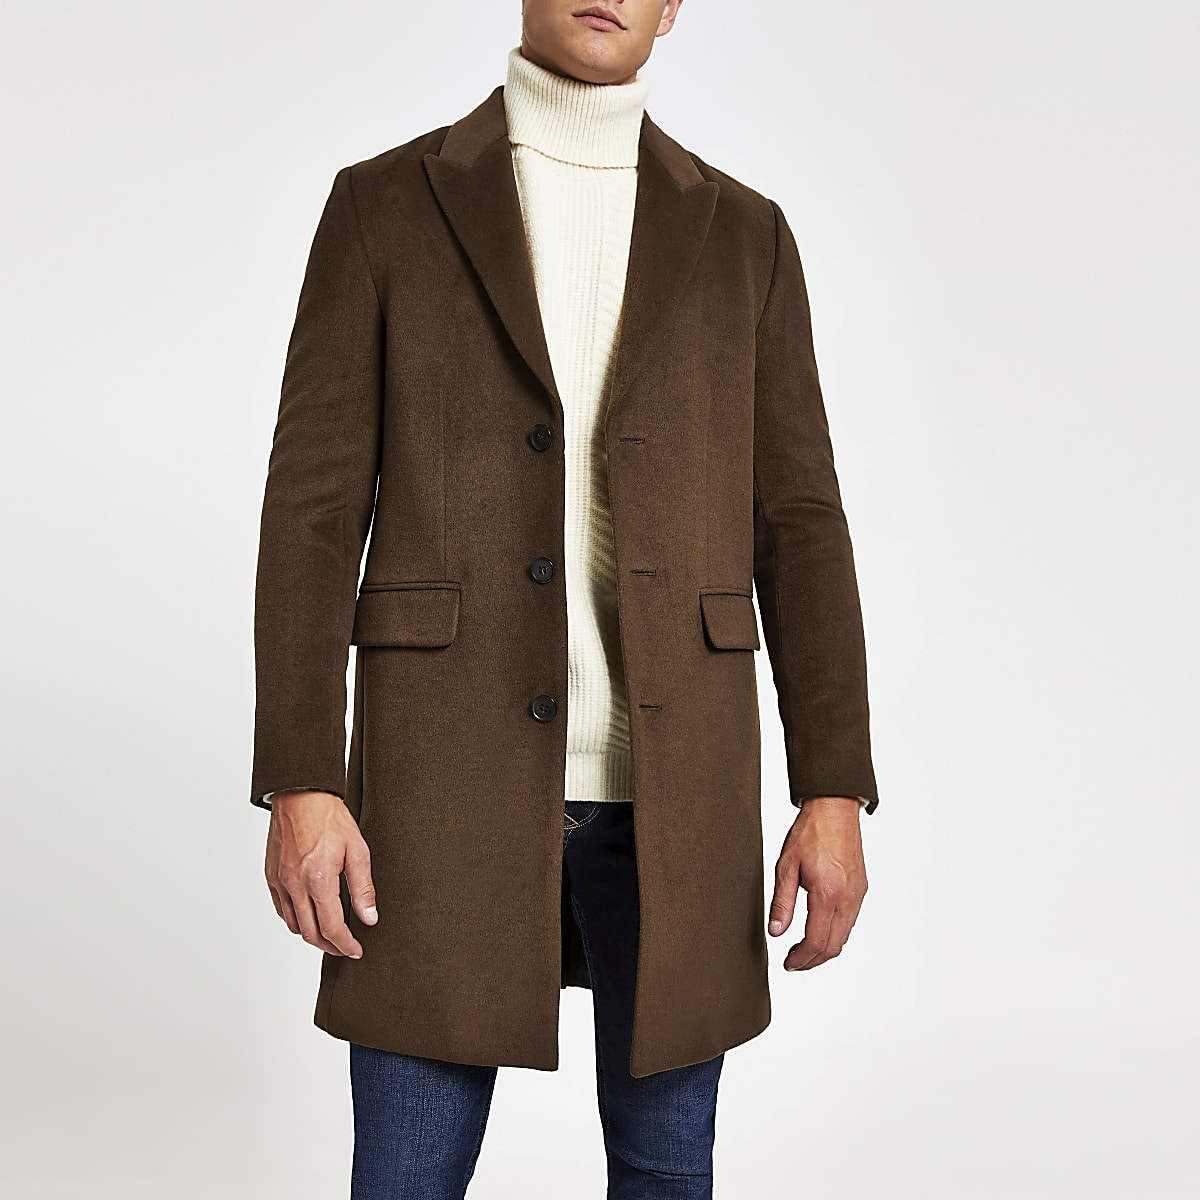 Dark brown single breasted overcoat